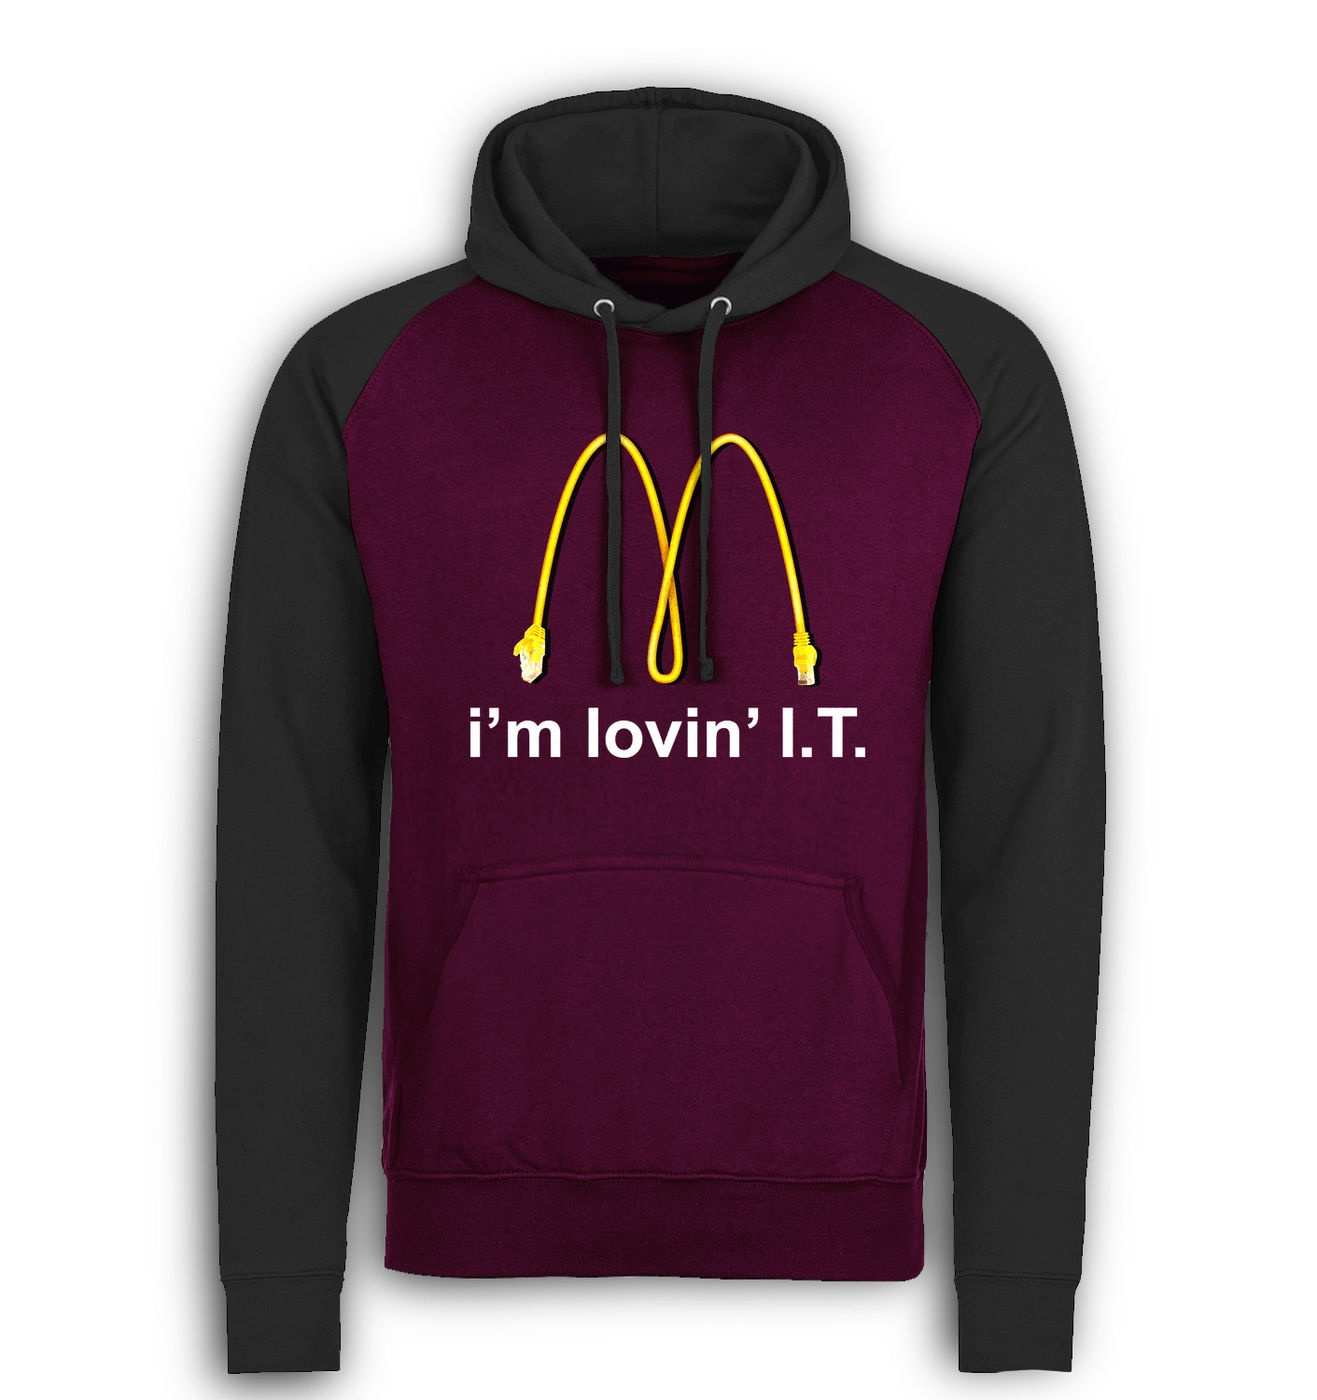 I'm Lovin' I.T. baseball hoodie by Something Geeky